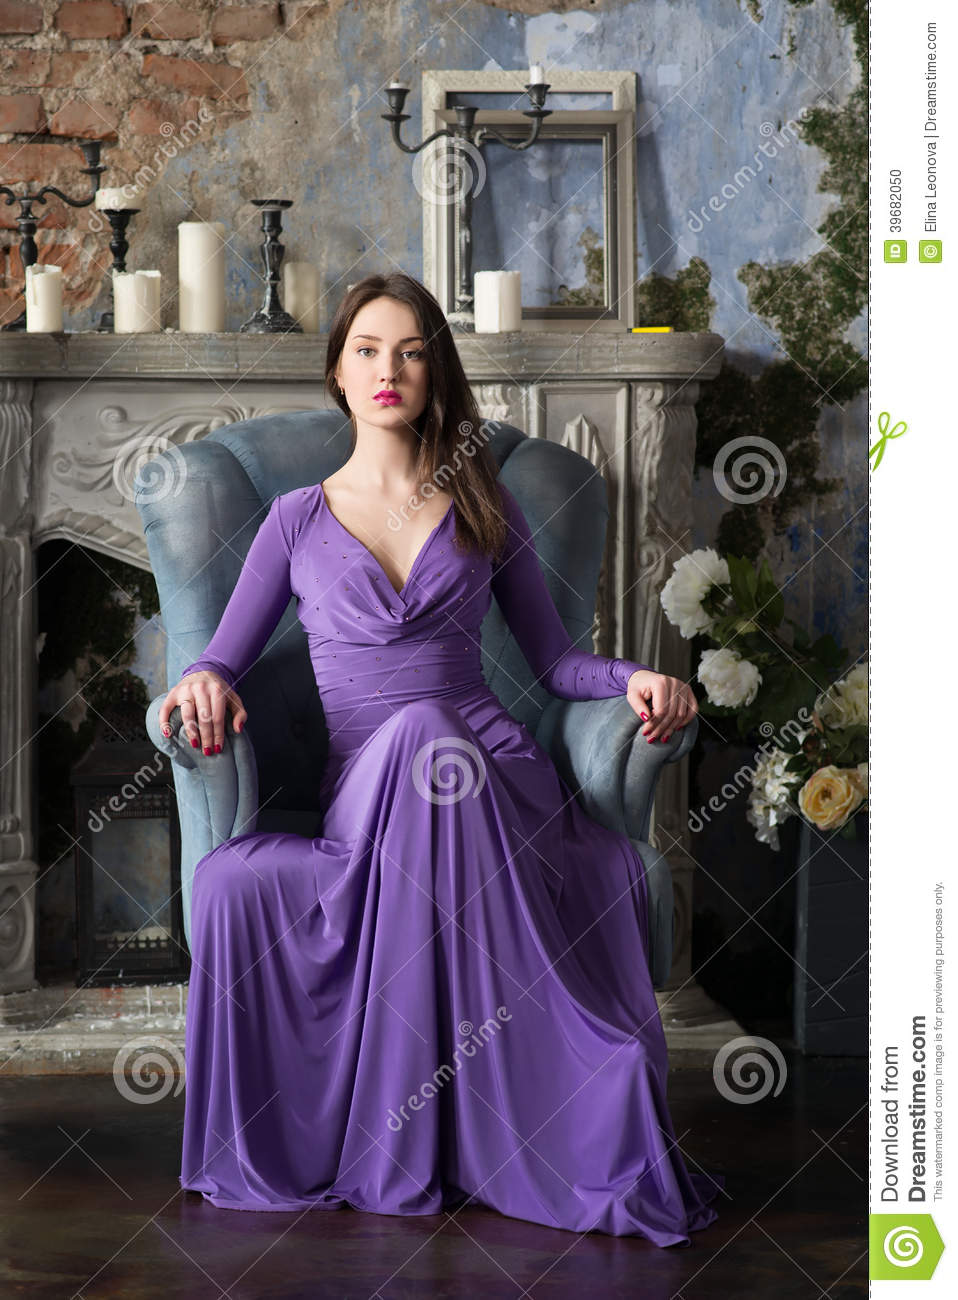 Elegance Woman In Long Violet Dress Sitting On Chair Indoor Stock Photo Image 39682050